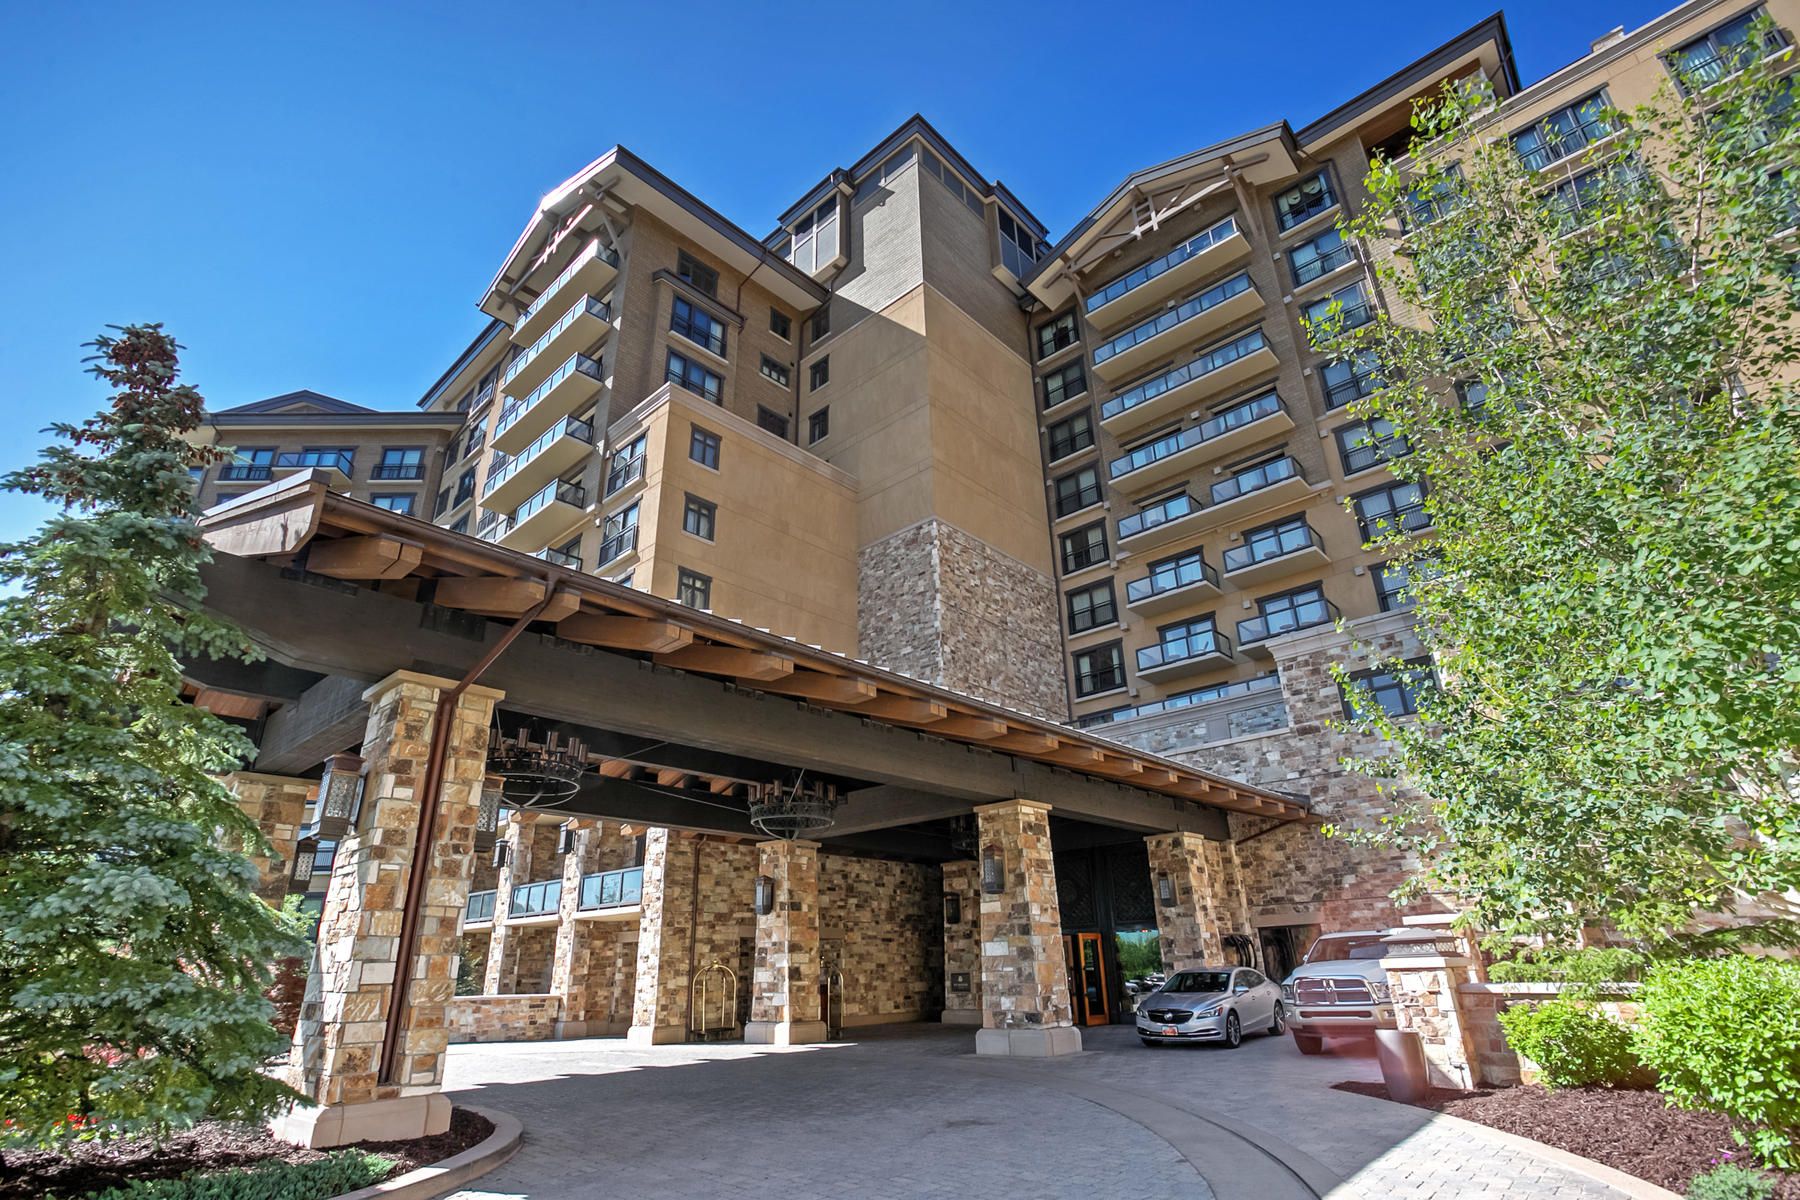 共管物業 為 出售 在 Slope-side St. Regis Pied-a-Terre 2300 E Deer Valley Dr #318 Park City, 猶他州, 84060 美國